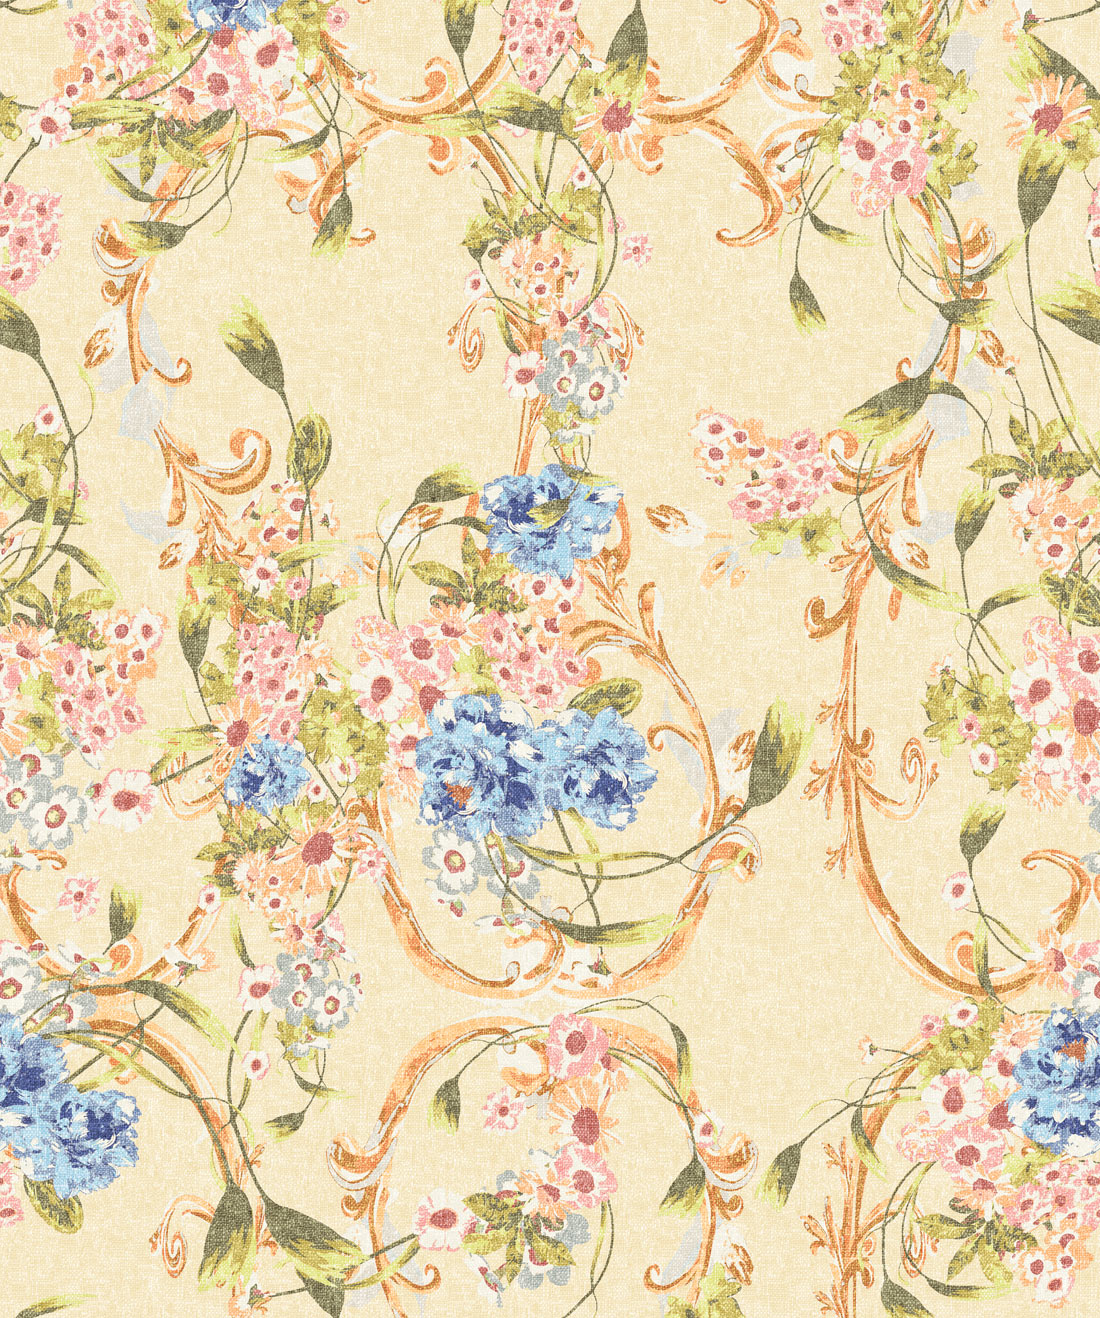 Dainty Vintage Florals Ditsy Floral Wallpaper Milton King